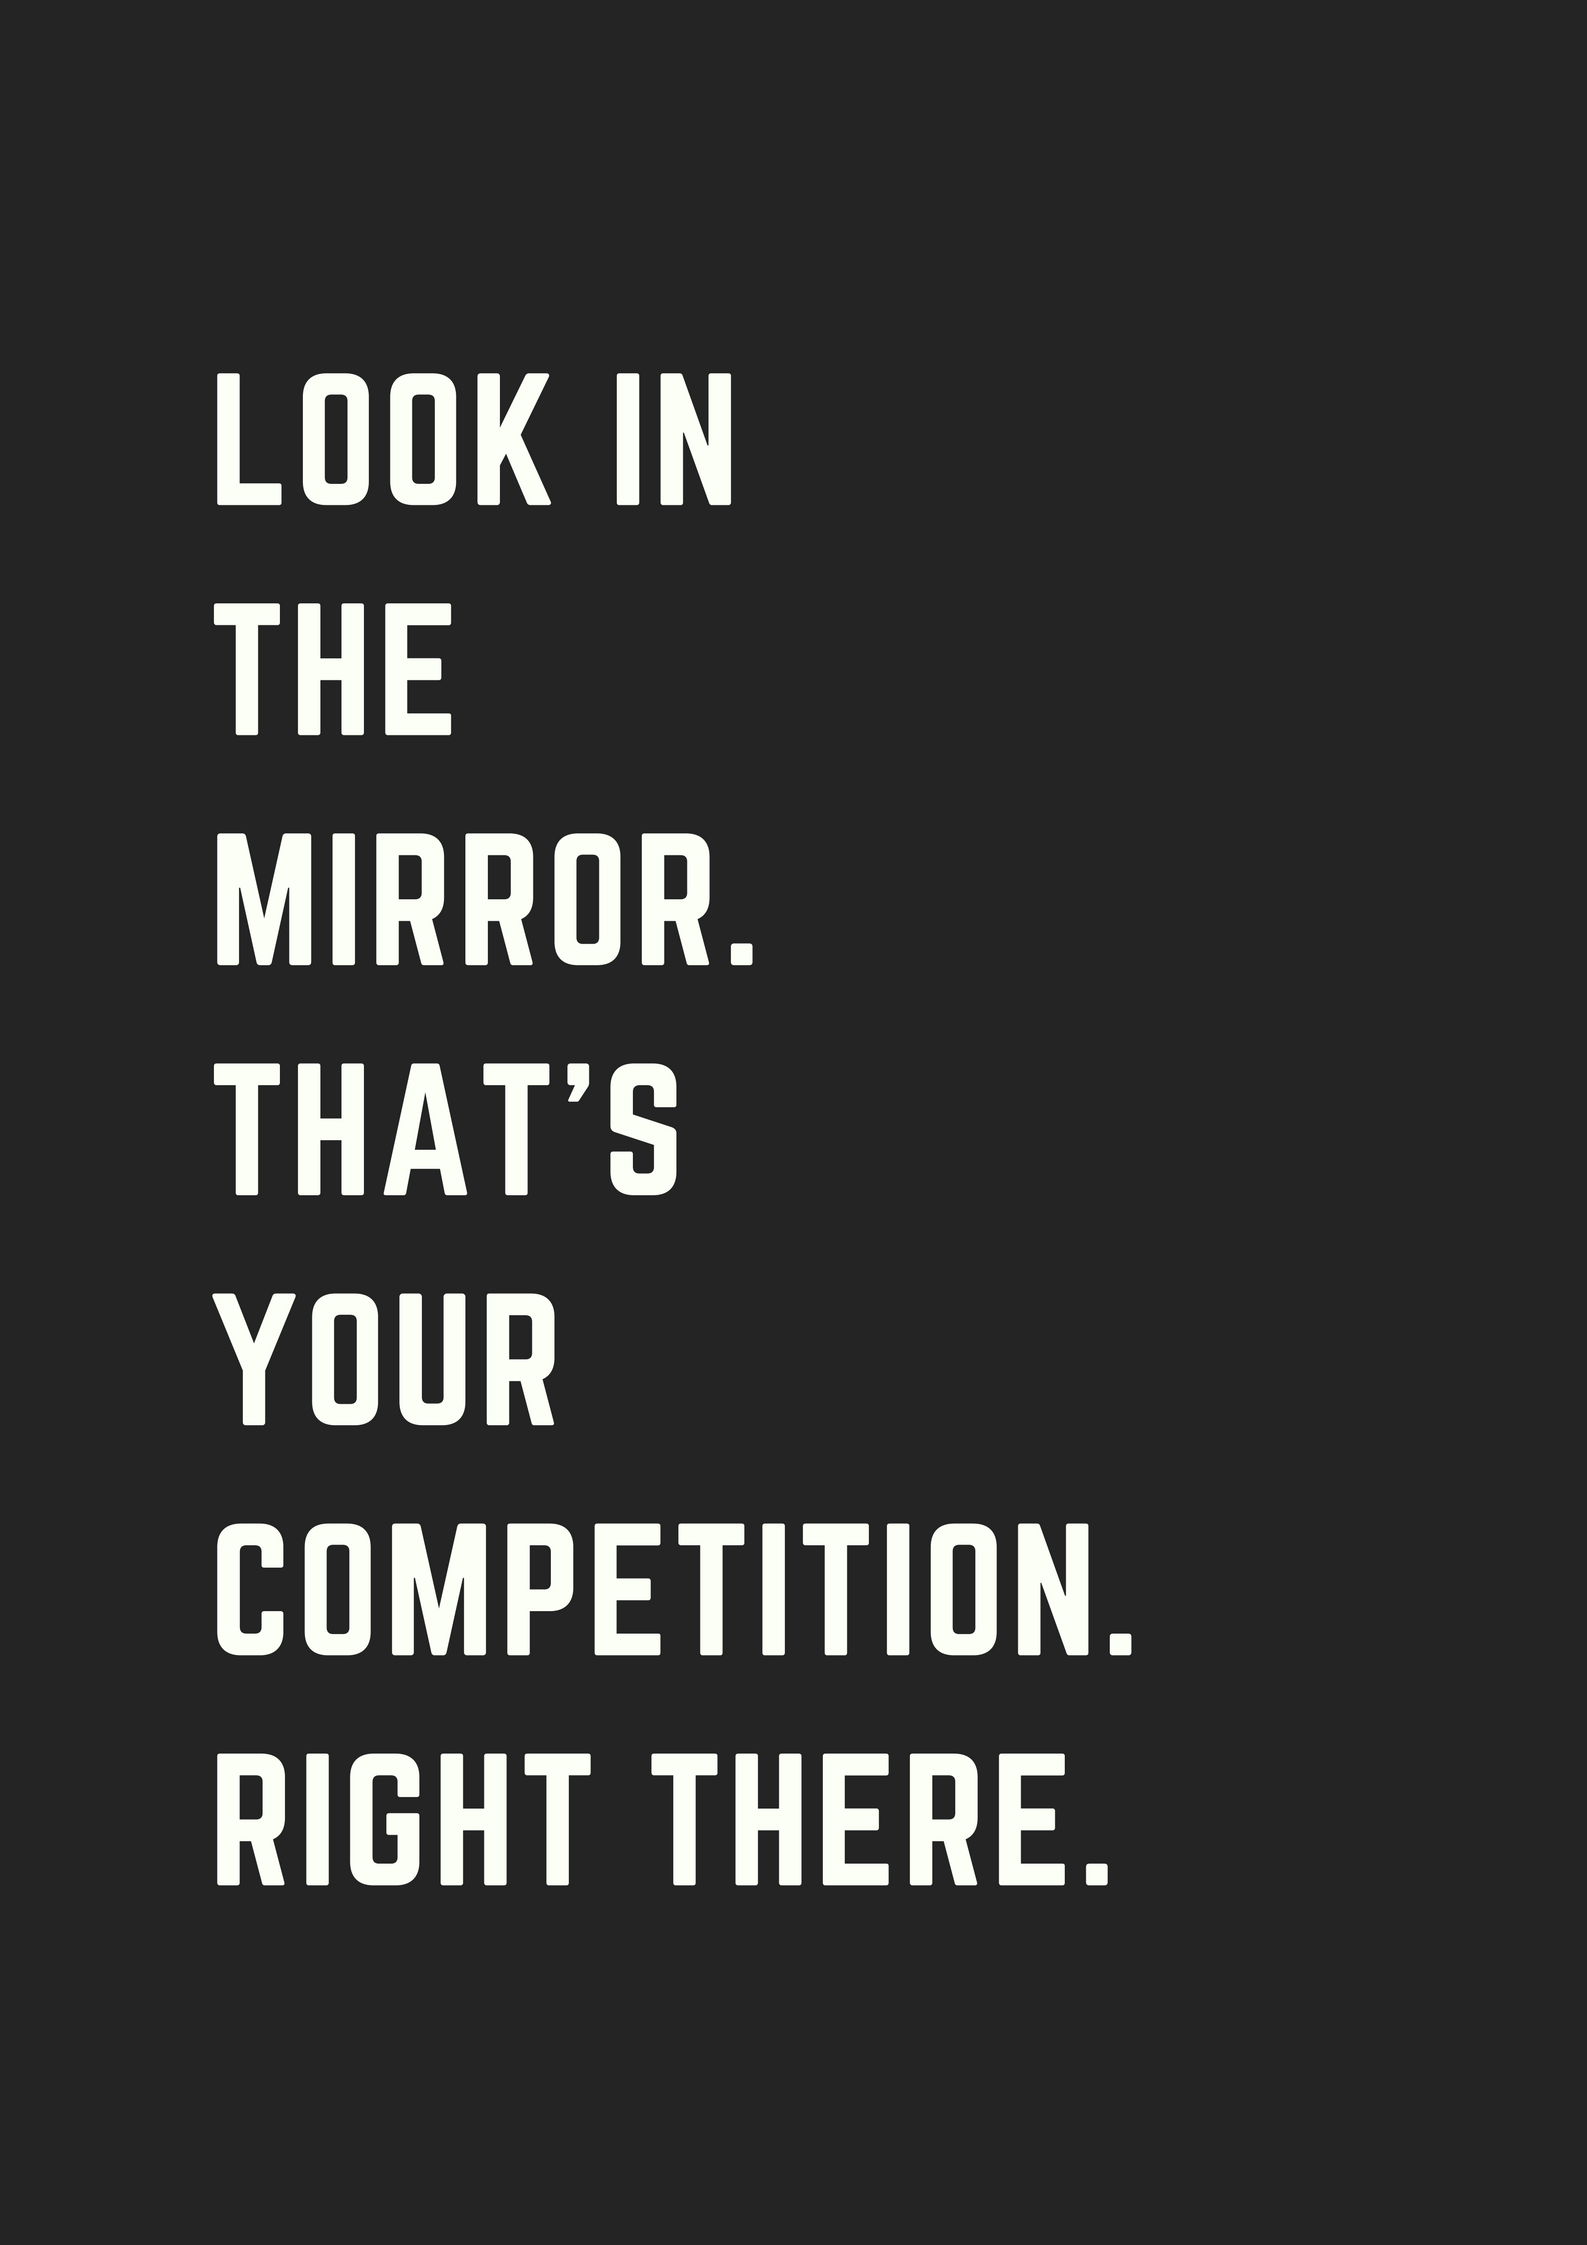 Best 5 Inspirational Quotes Ever  Competition quotes, Mirror